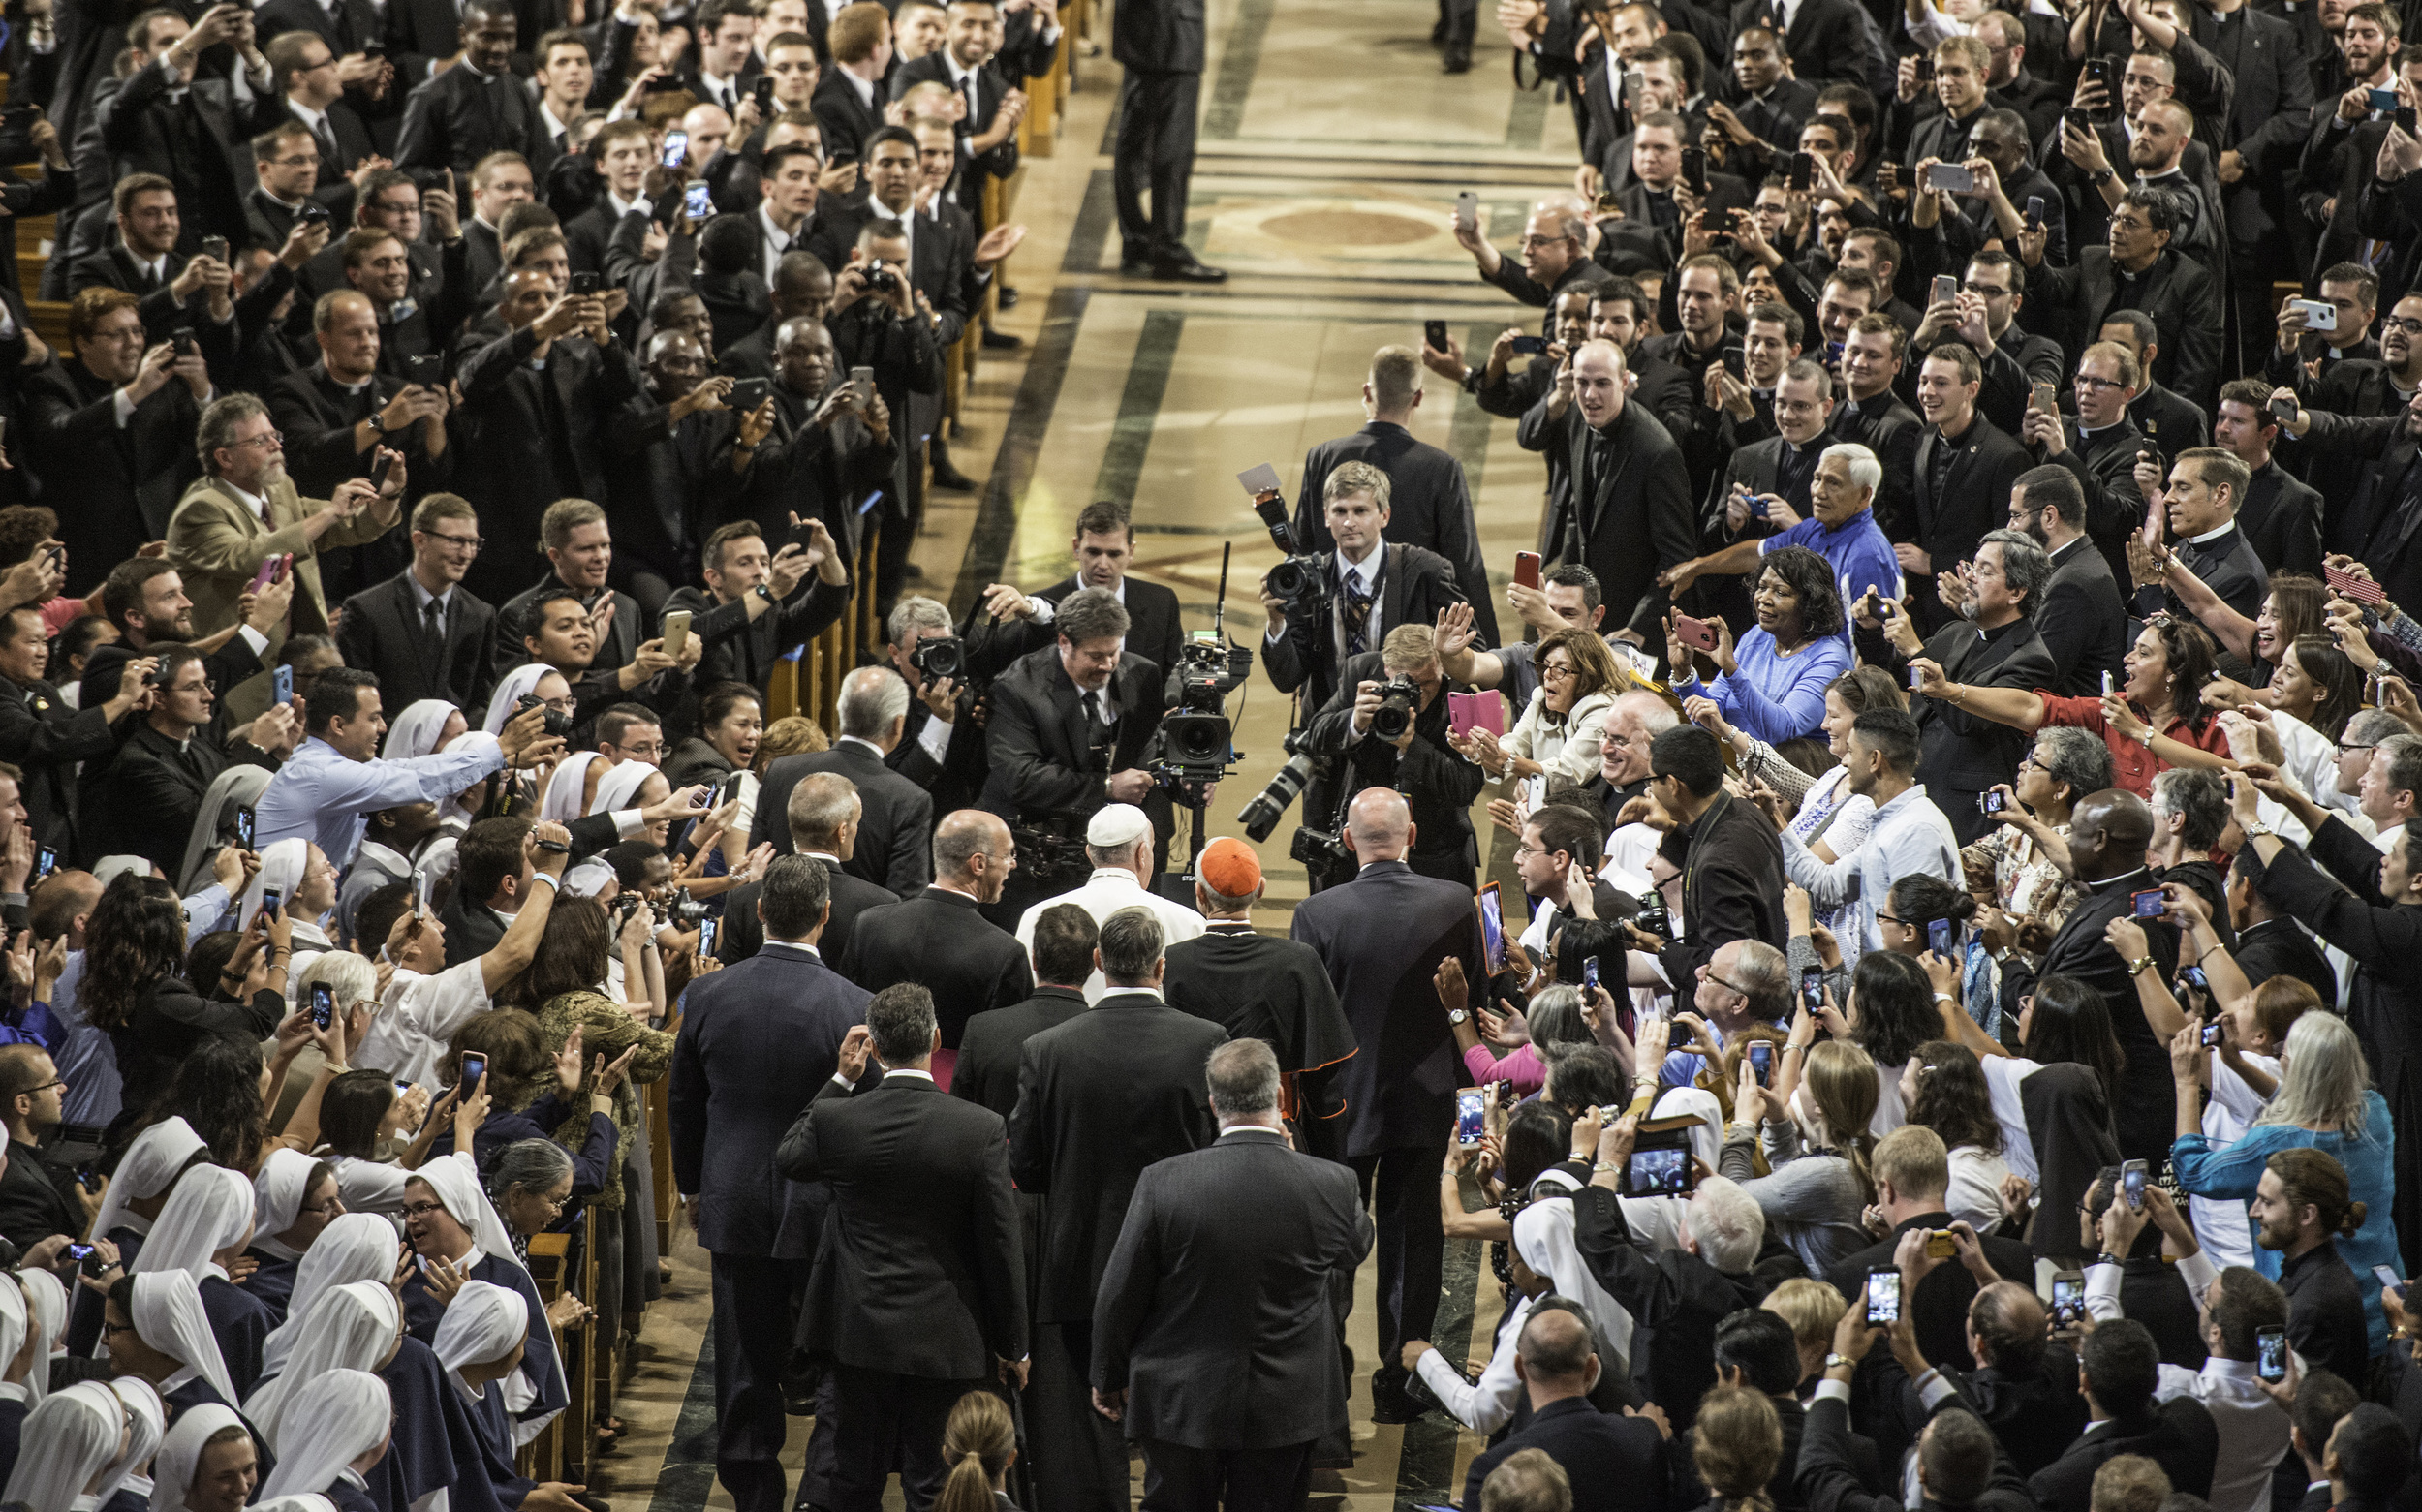 A Papal Welcome